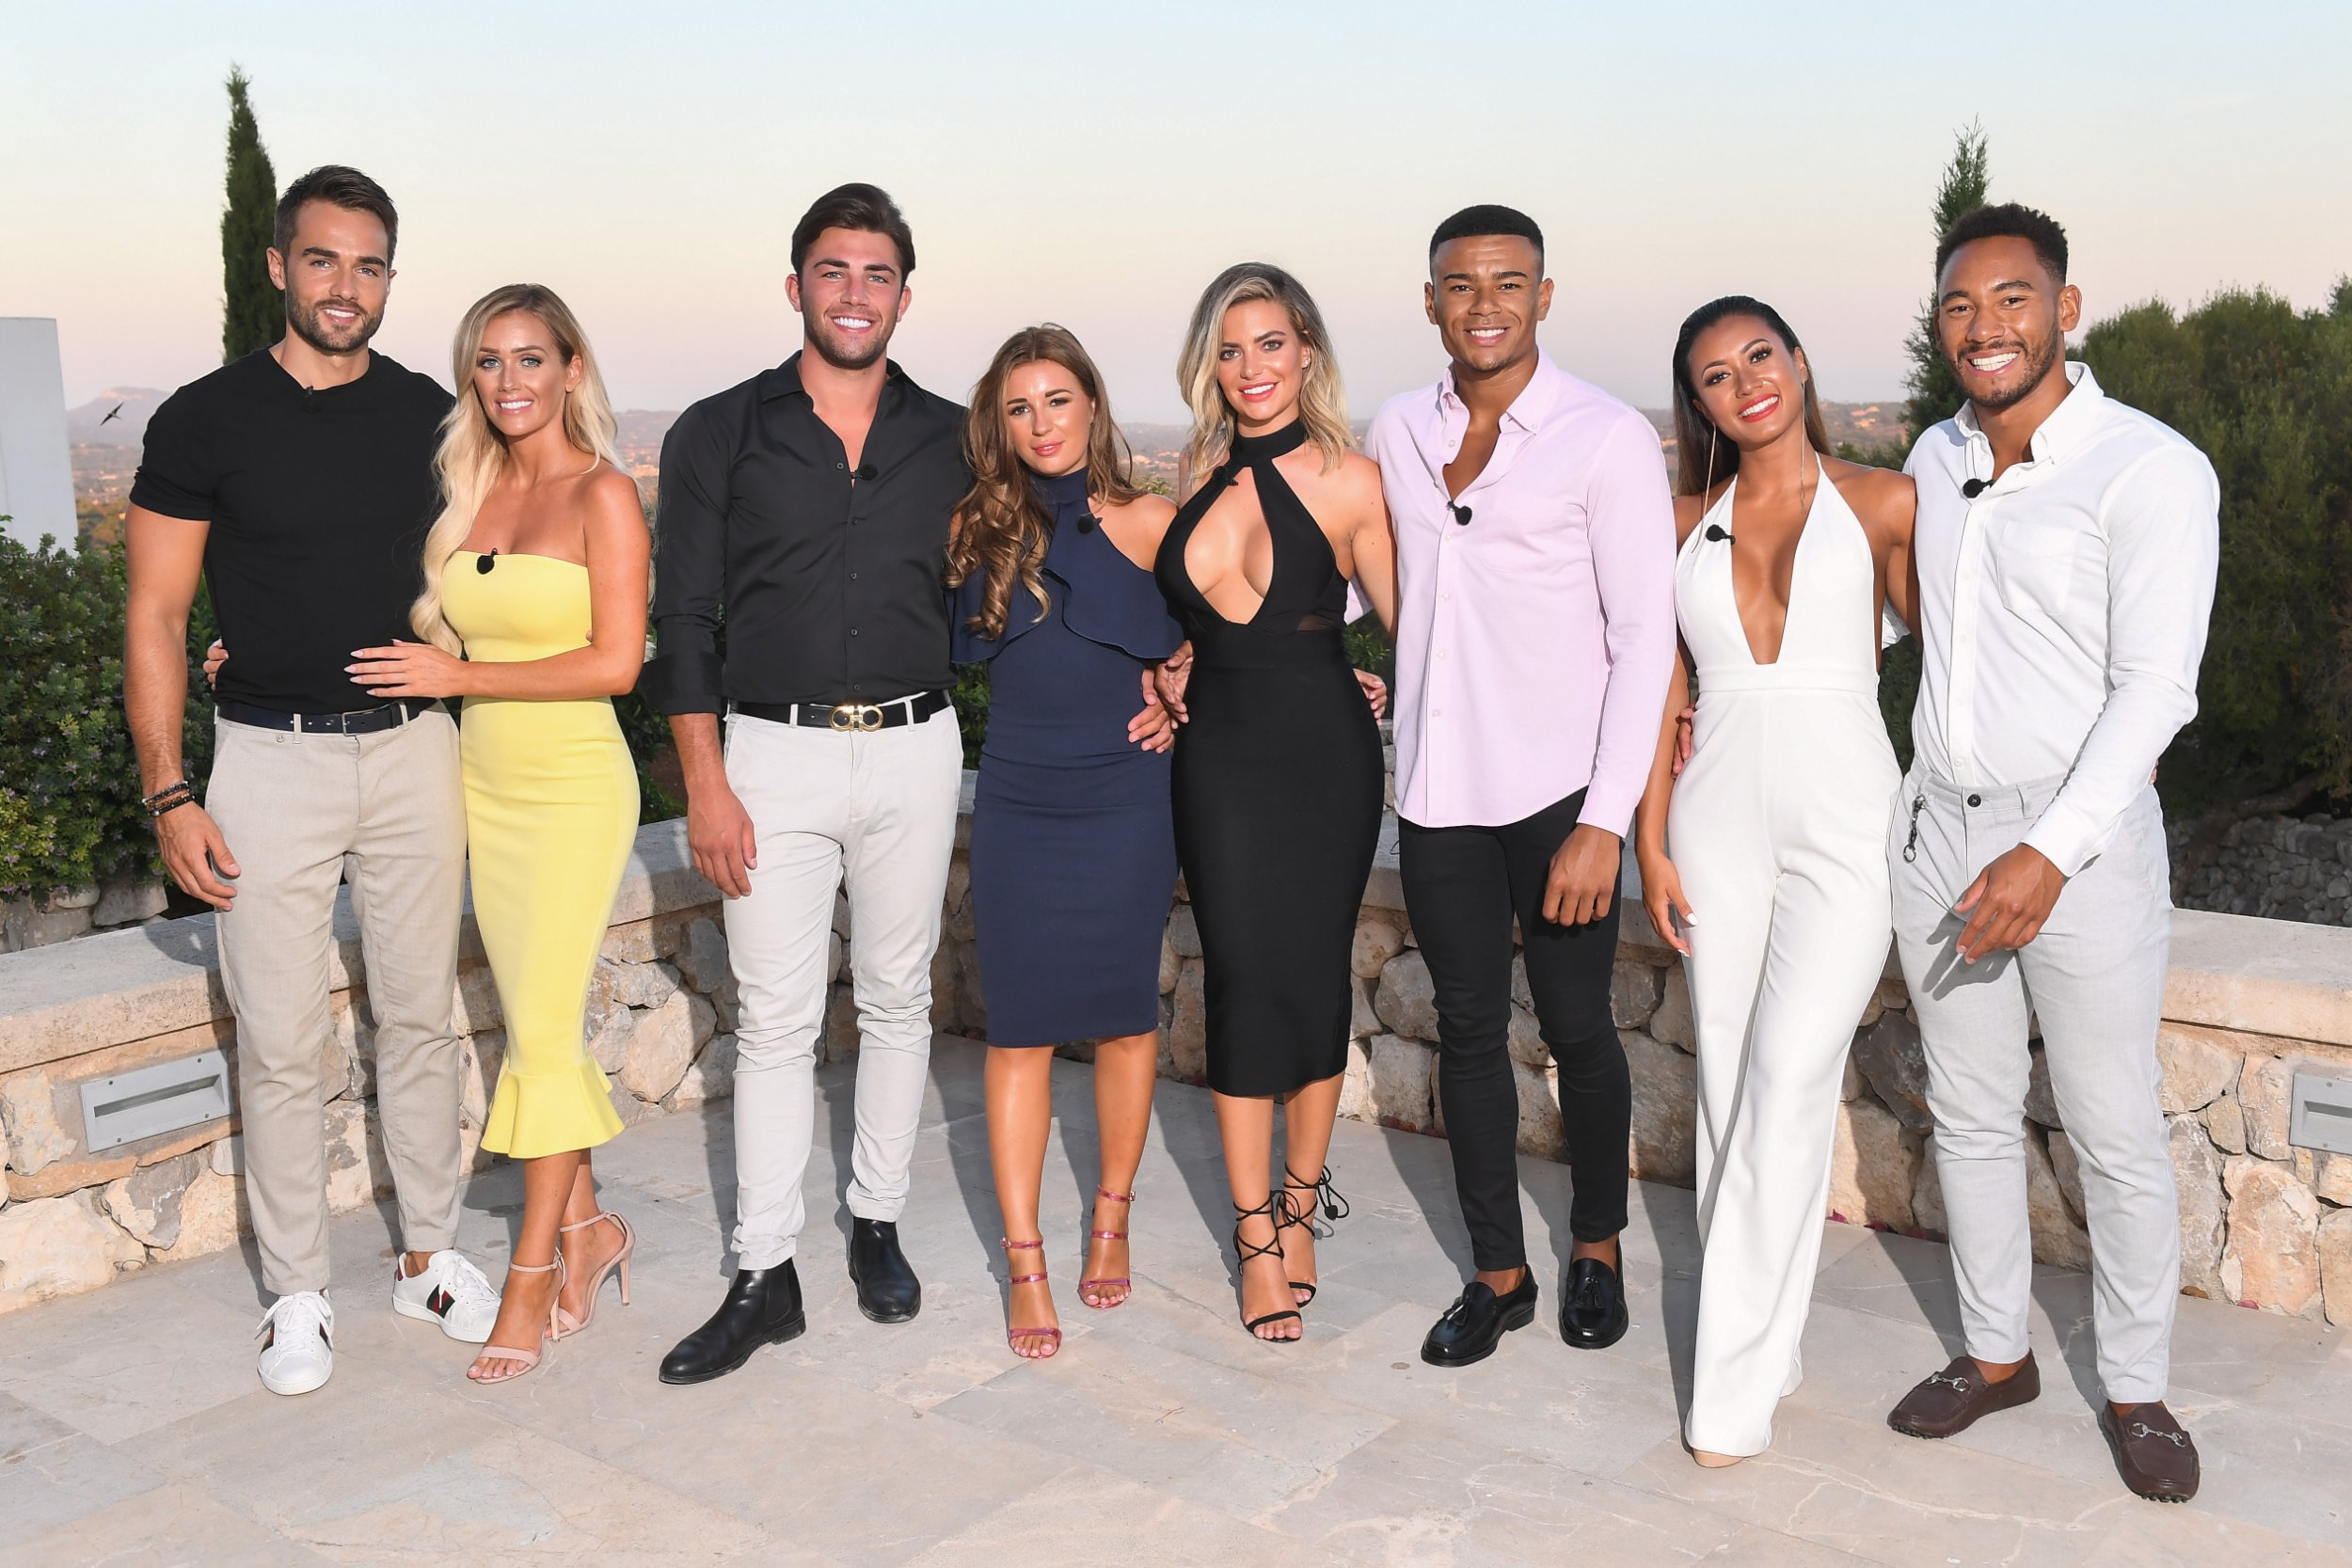 Editorial Use Only. No Merchandising. No Commercial Use Mandatory Credit: Photo by James Gourley/ITV/REX/Shutterstock (9773969d) Paul Knops, Laura Anderson, Jack Fincham, Dani Dyer, Wes Nelson, Megan Barton Hanson, Kazimir Crossley and Josh Denzel 'Love Island' TV Show, Series 4, Episode 57, The Final, Majorca, Spain - 30 Jul 2018